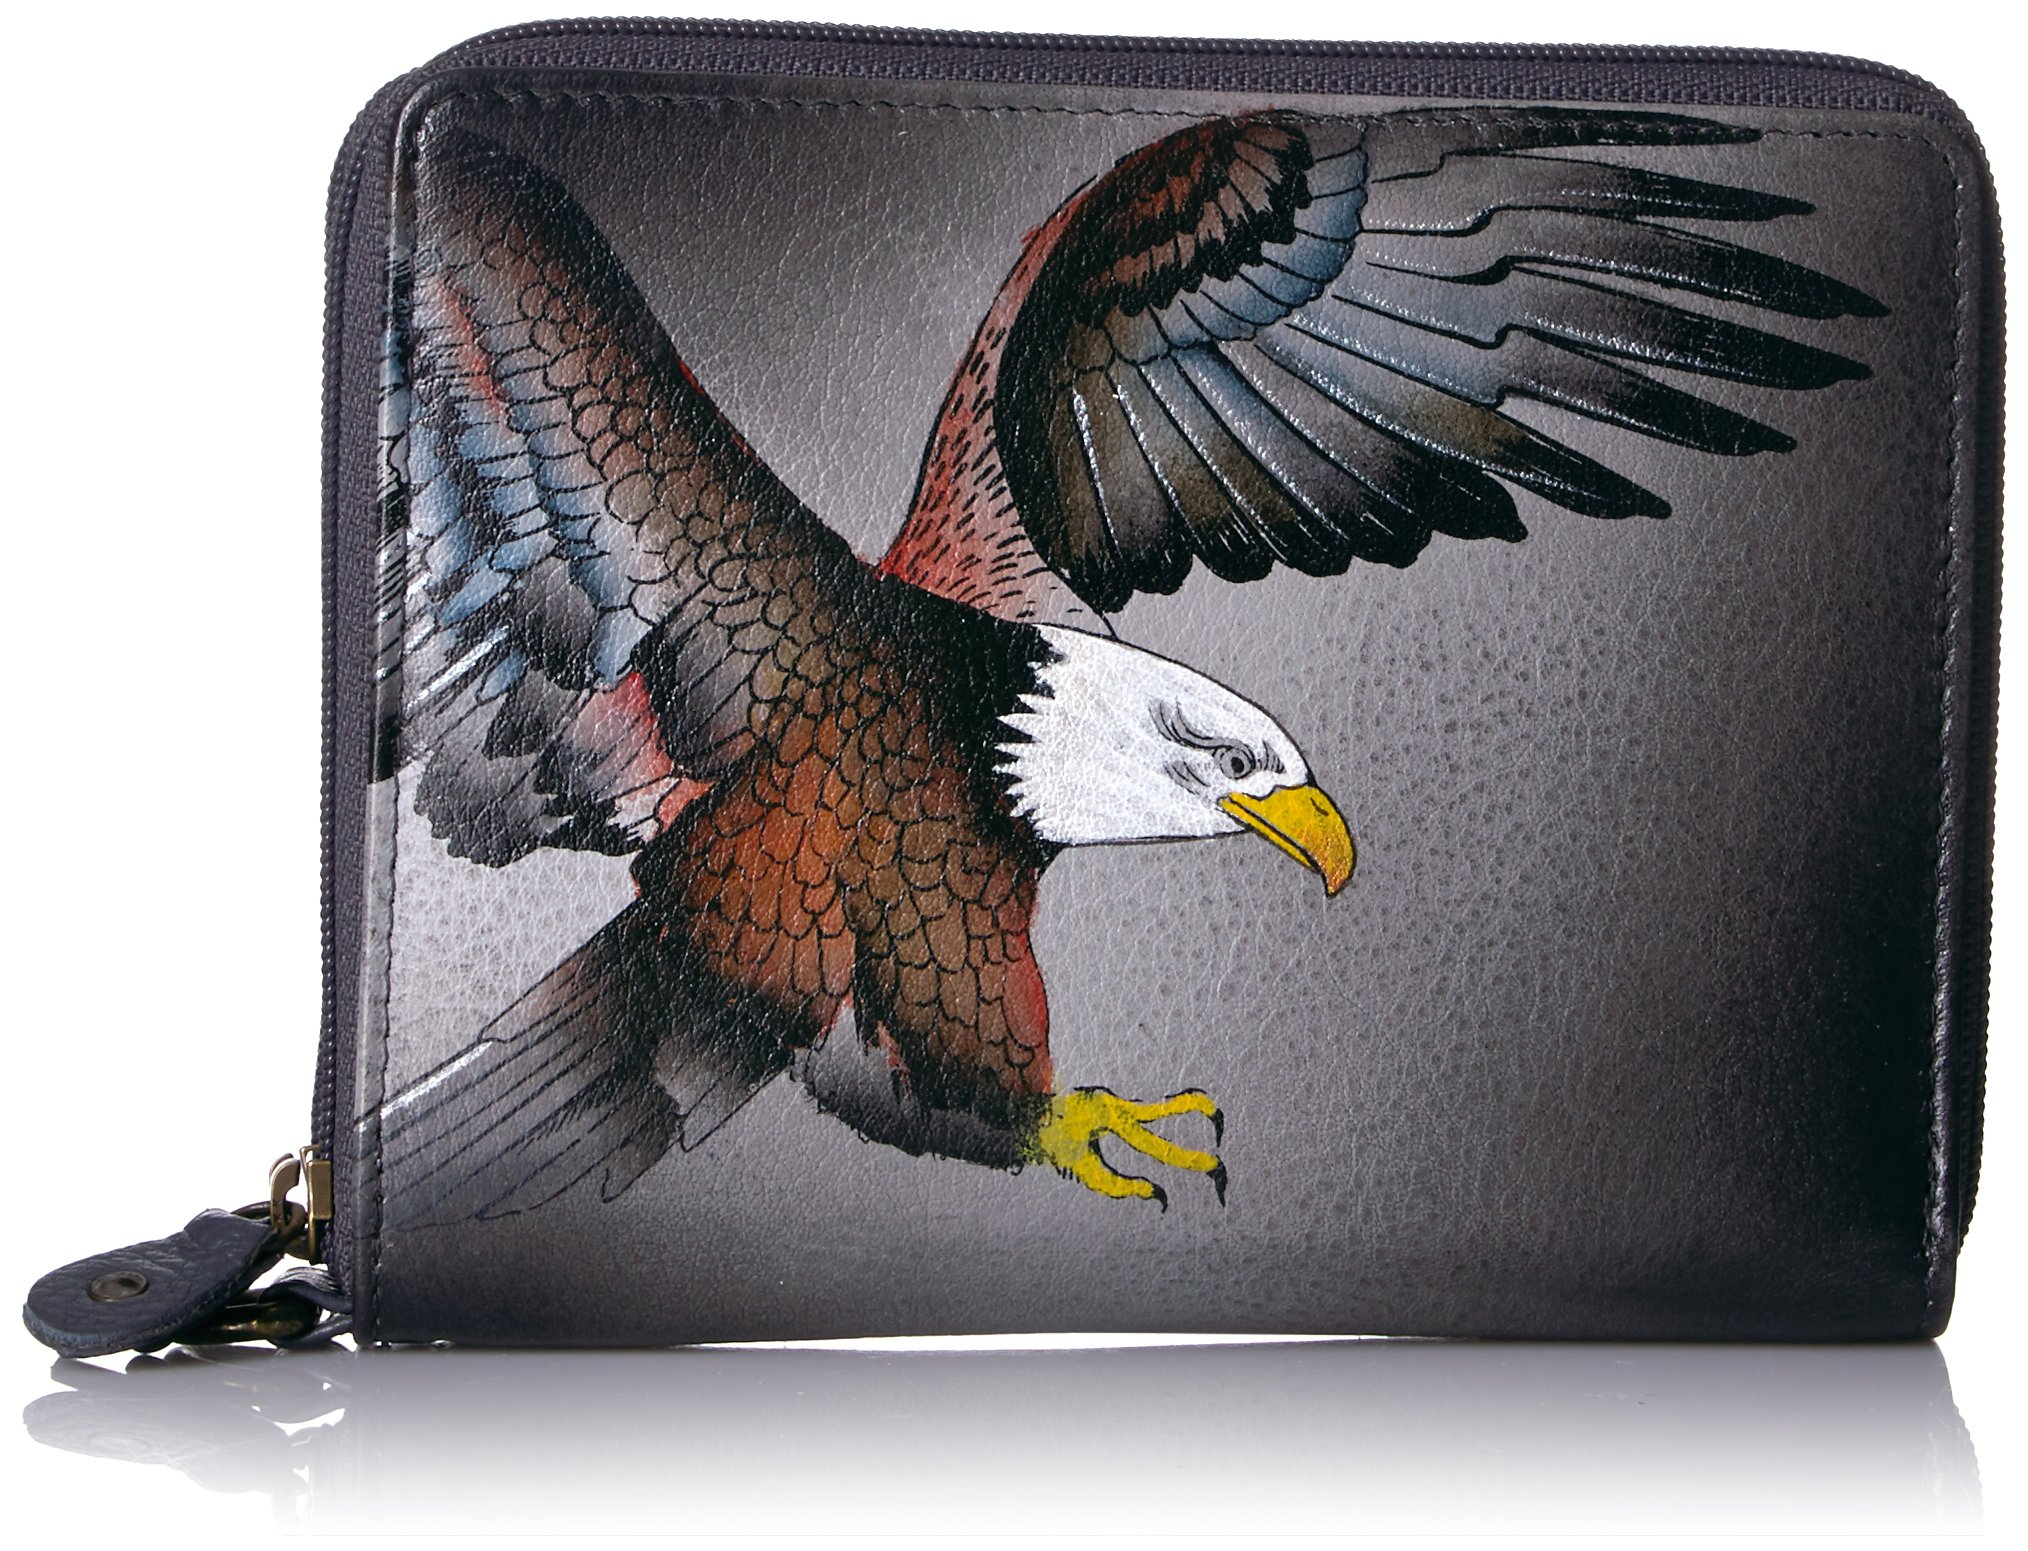 Anuschka Handpainted Leather Zip-around Organiser Wallet-american Eagle Wallet, American Eagle, One Size